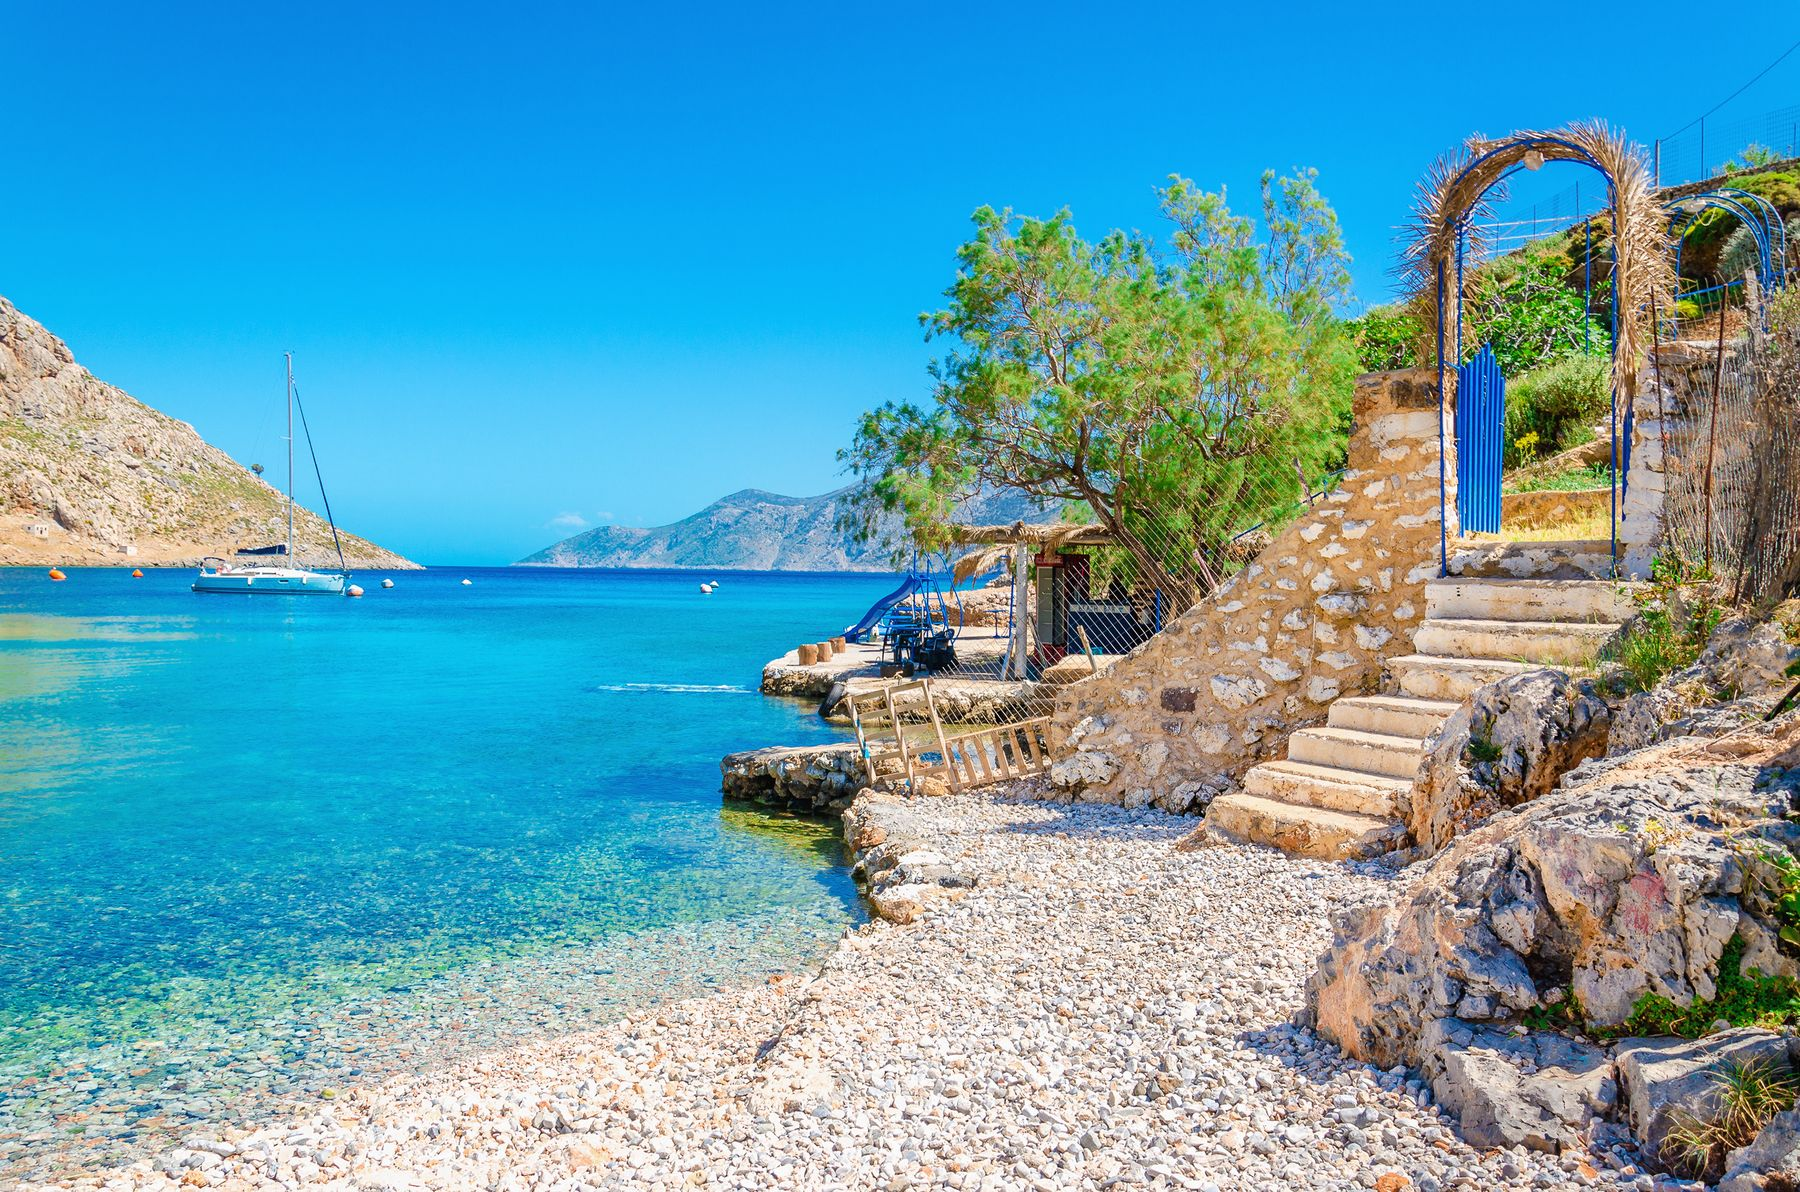 With its mild climate, Crete is one of Europe's best winter sun destinations